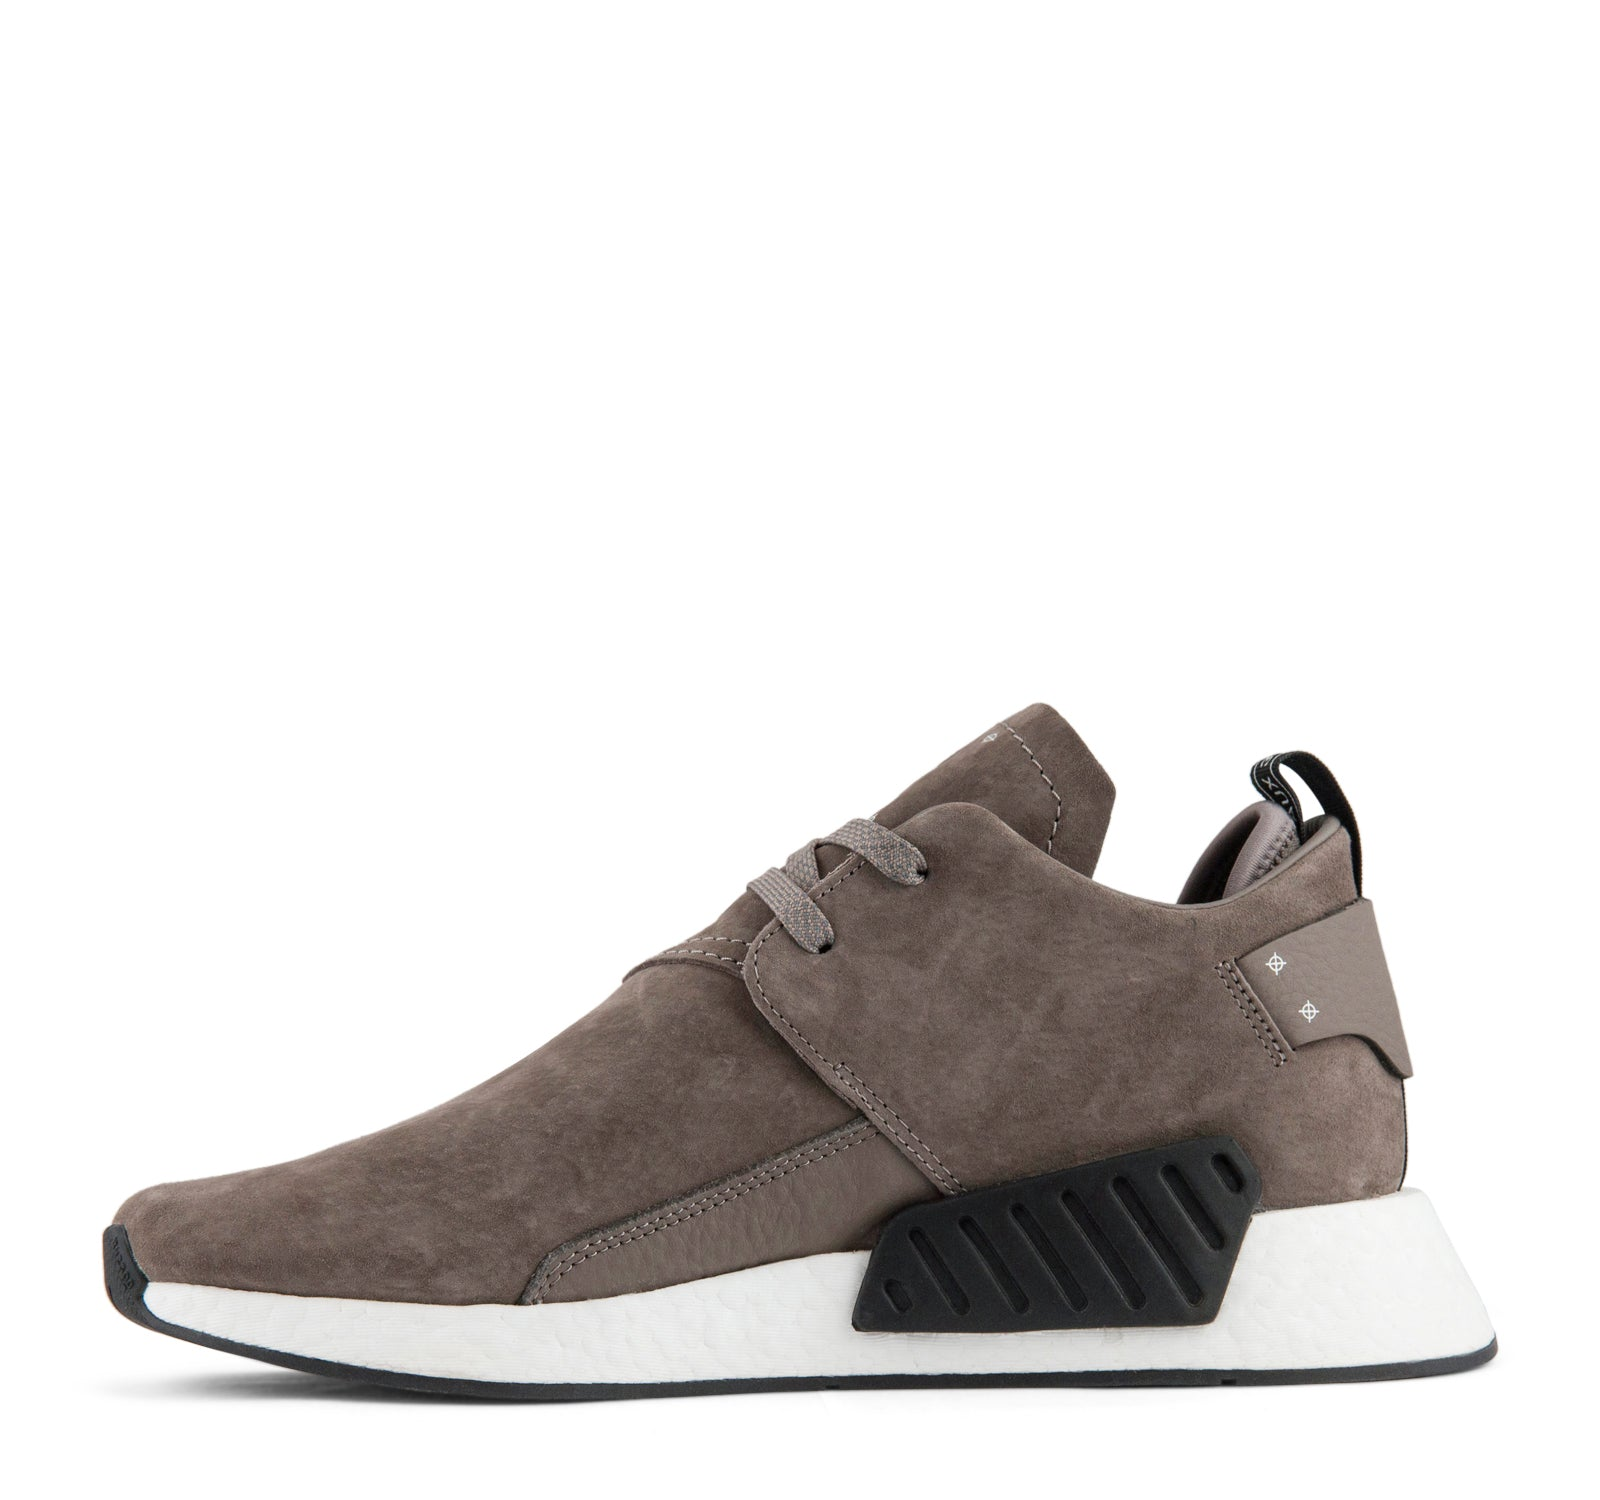 867ccca37 ... Adidas NMD C2 BY9913 Men s Sneaker in Brown - Adidas - On The EDGE ...